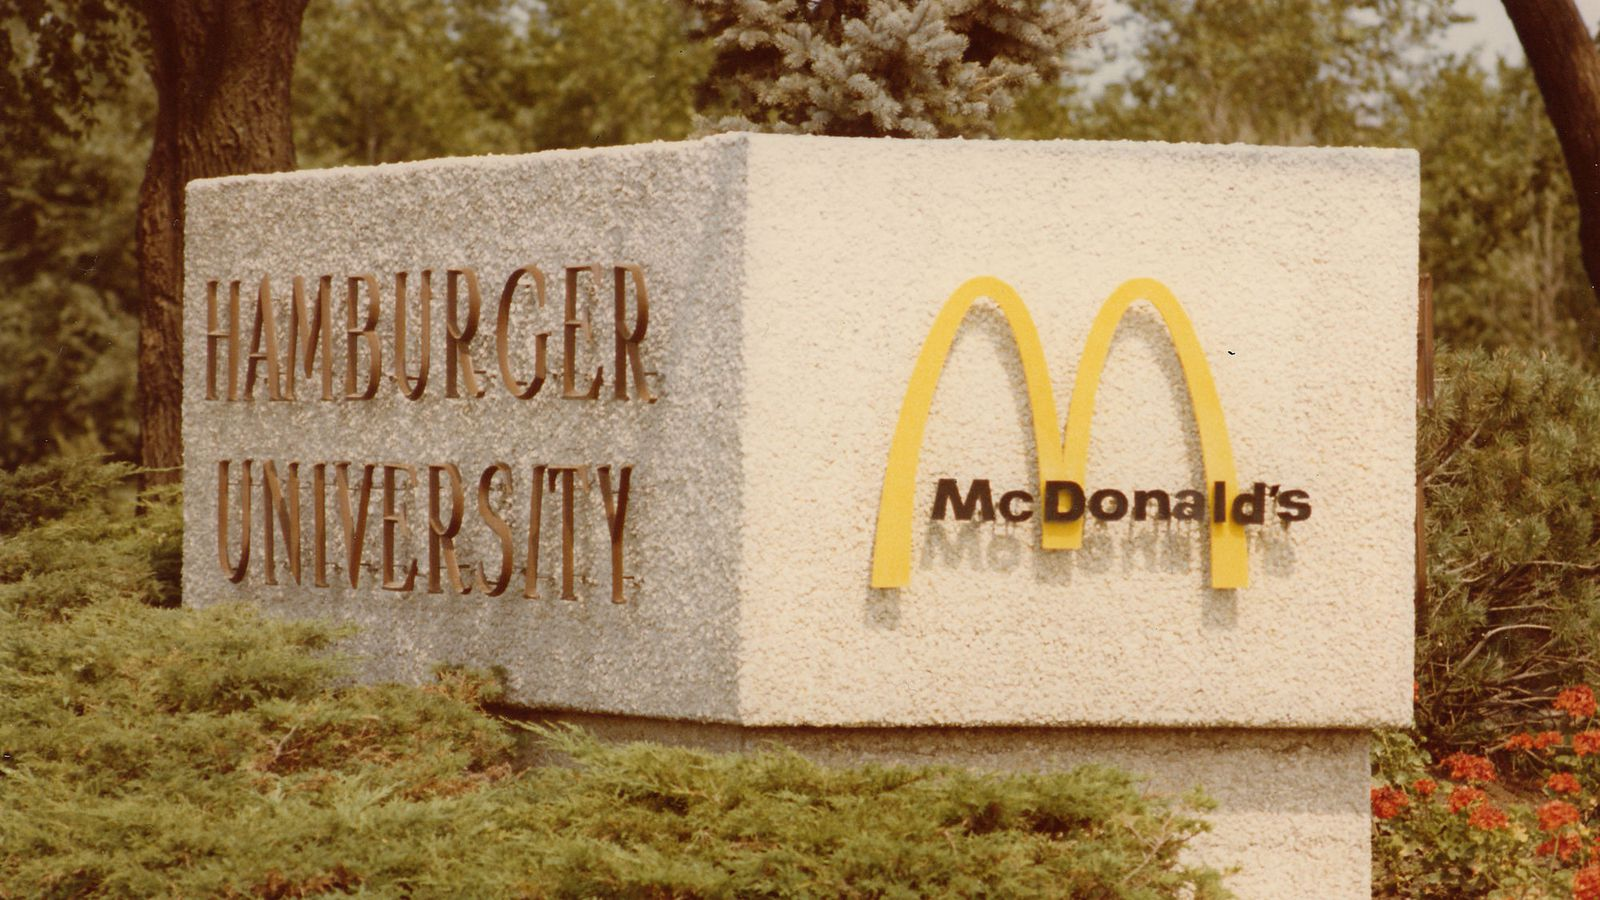 hamburger university Hamburger university (not to be confused with a real institution of the same name) is a 1987 tv commercial starring ronald mcdonald and the hamburglar, featuring the hamburger kids the plot involves ronald teaching his students, anthropomorphic hamburgers, about the hamburglar and his thieving .